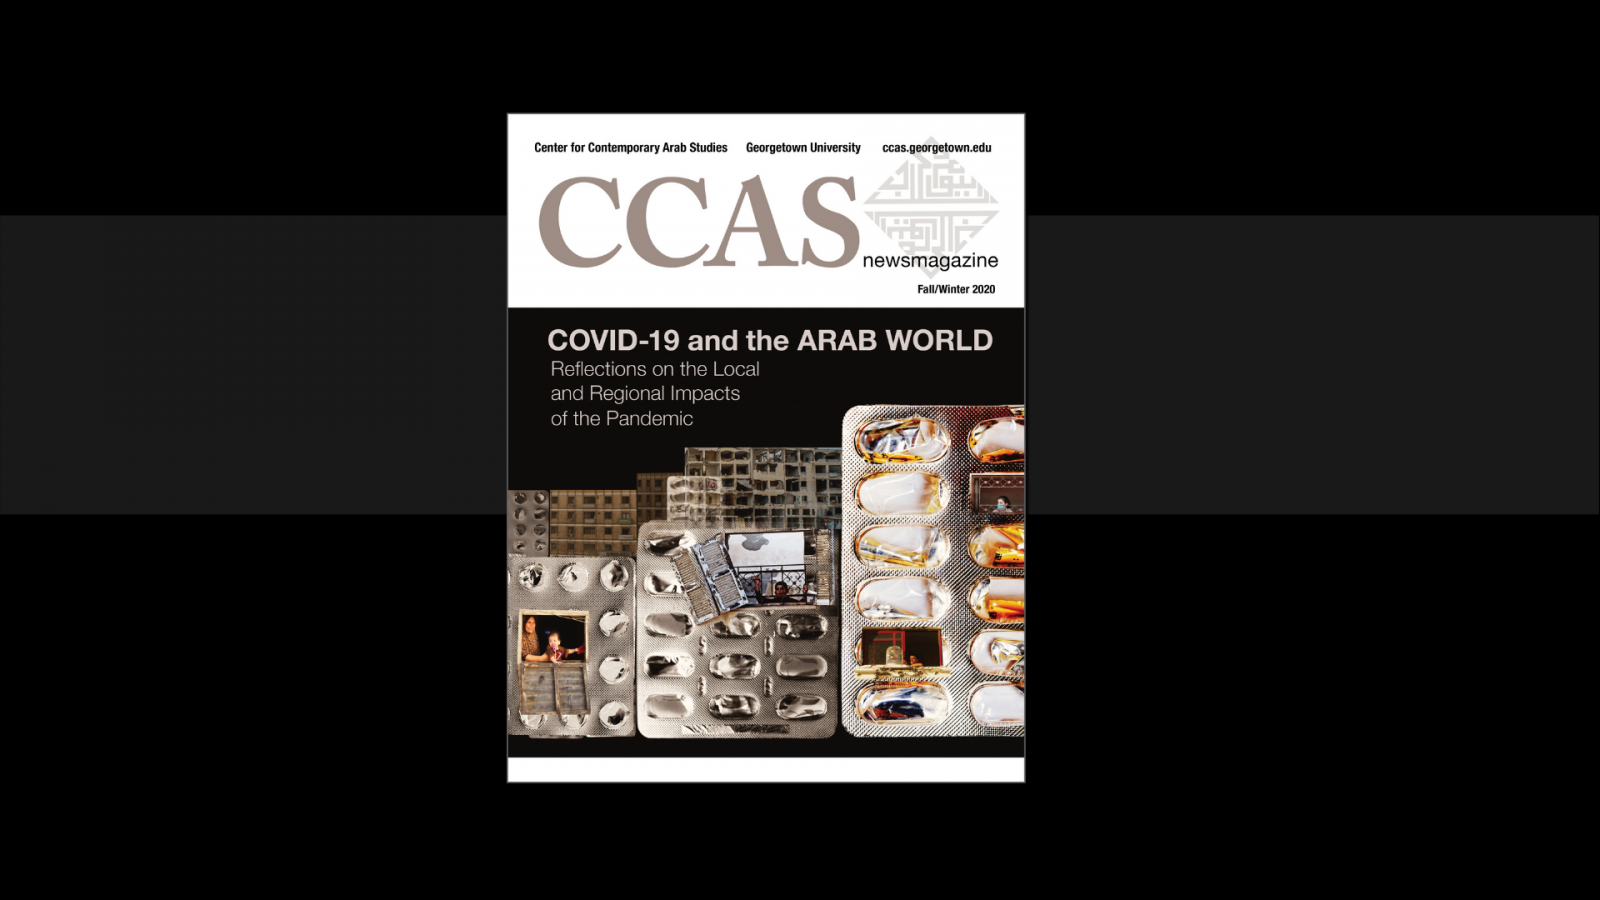 The cover of the fall/winter CCAS newsmagazine